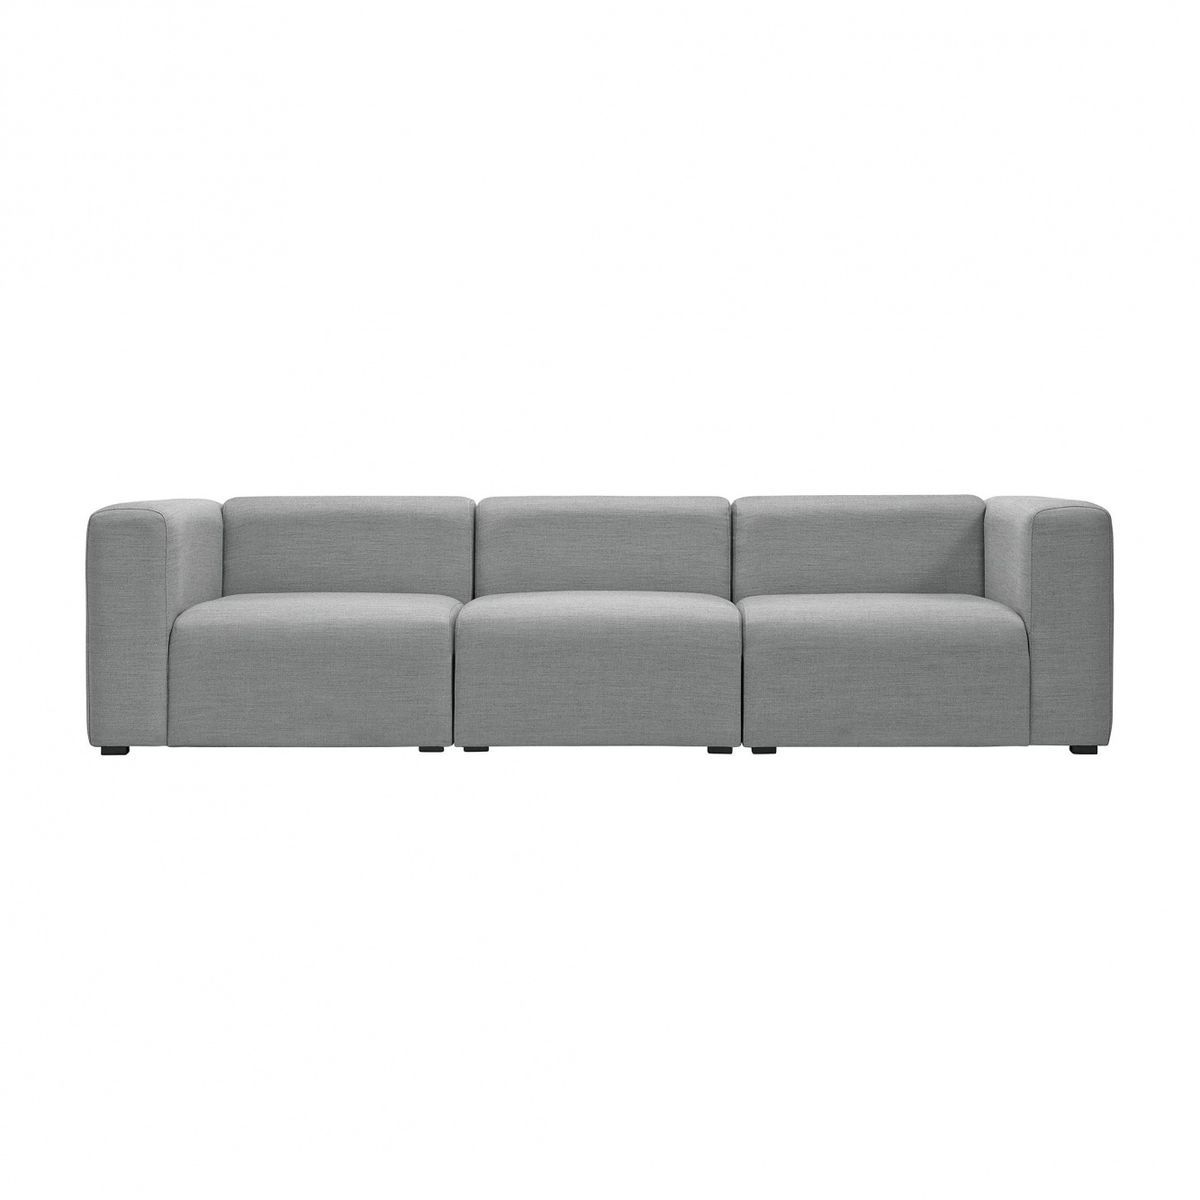 hay mags sofa fabrics flexsteel thornton dimensions 3 seater fabric surface sofas seating